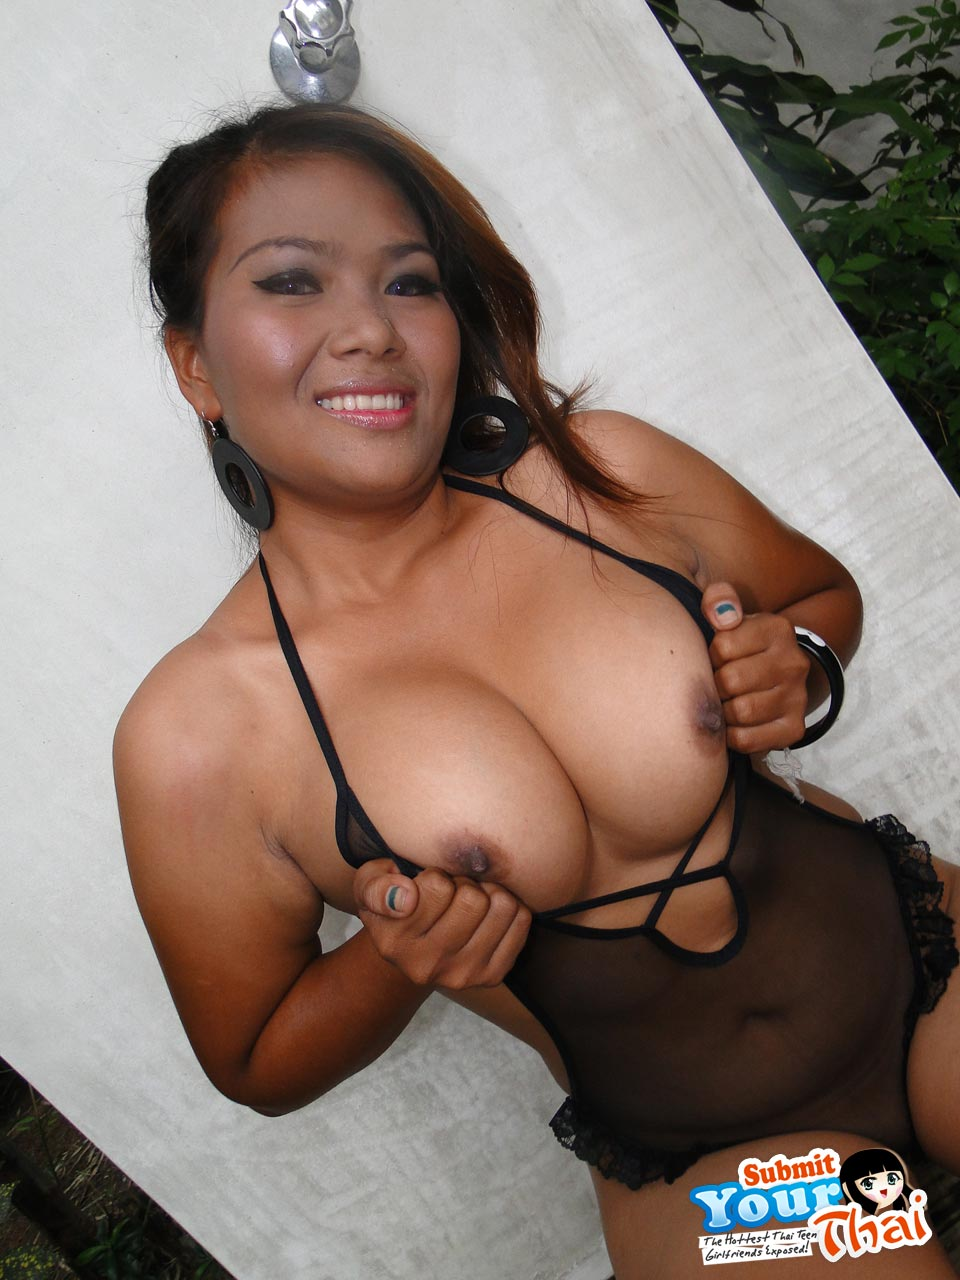 thai Submit tits your big